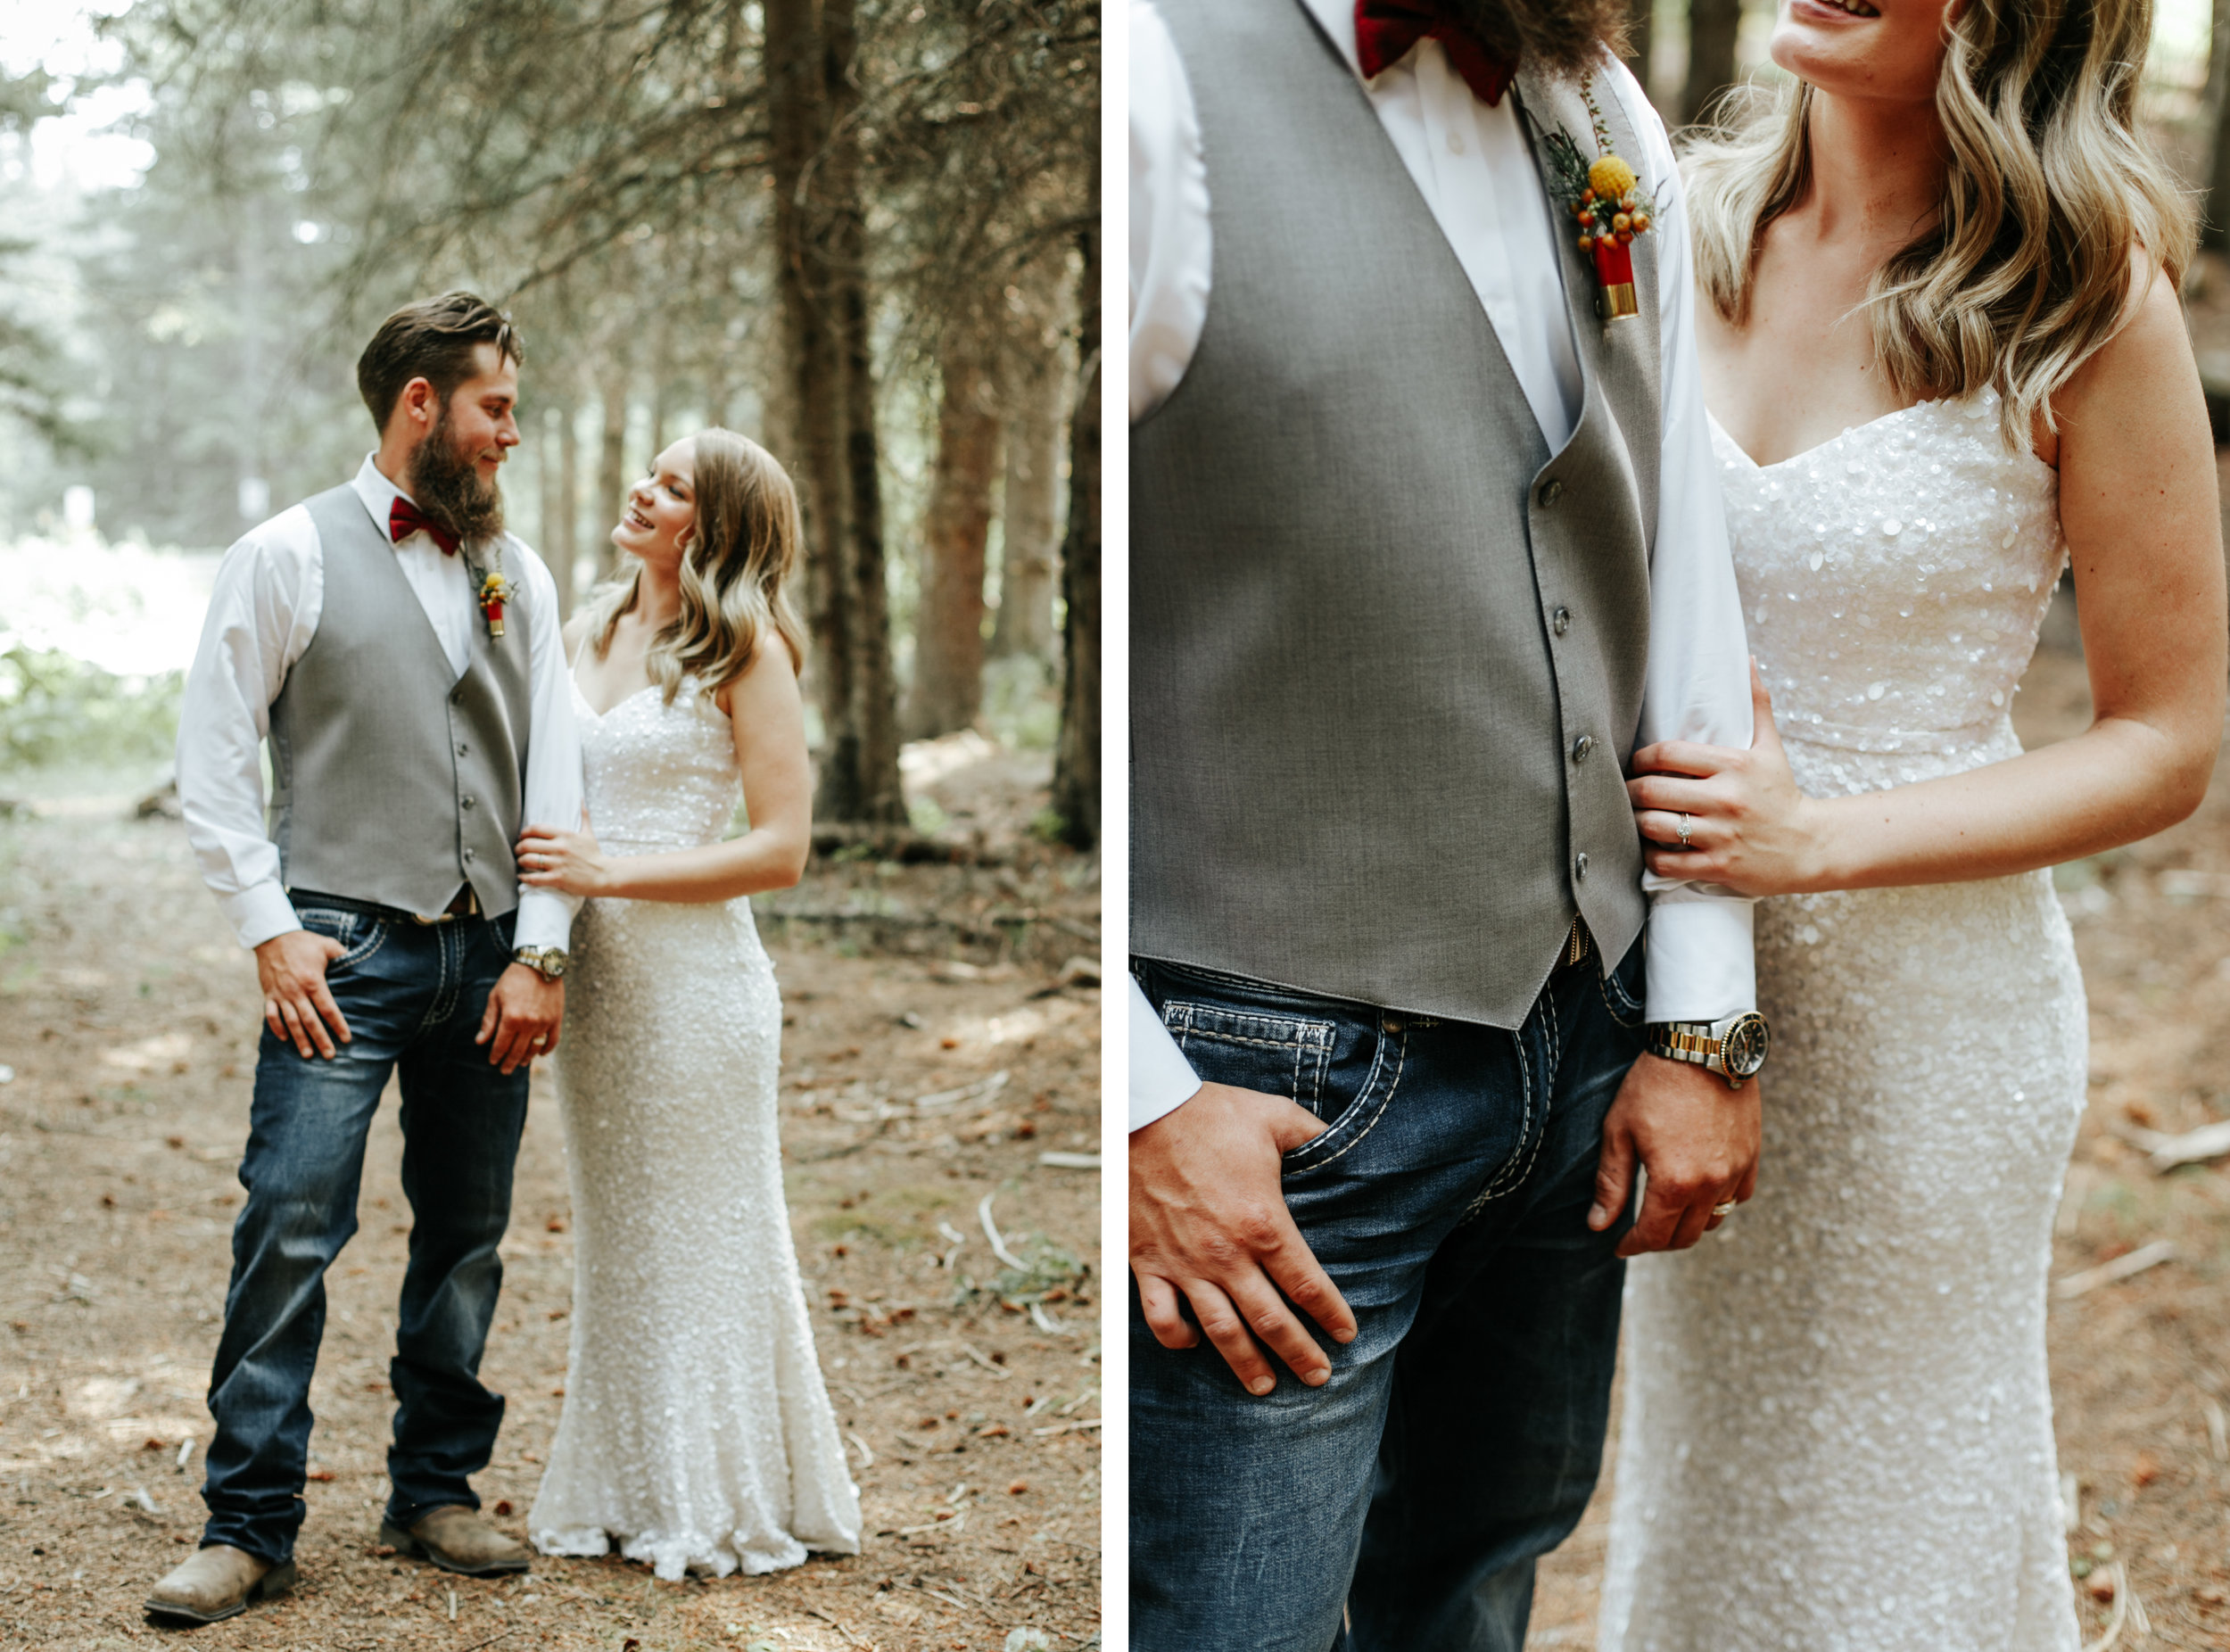 castle-mountain-wedding-photographer-love-and-be-loved-photography-lethbridge-pincher-creek-crowsnest-pass-yannick-rylee-photo-image-picture-101.jpg